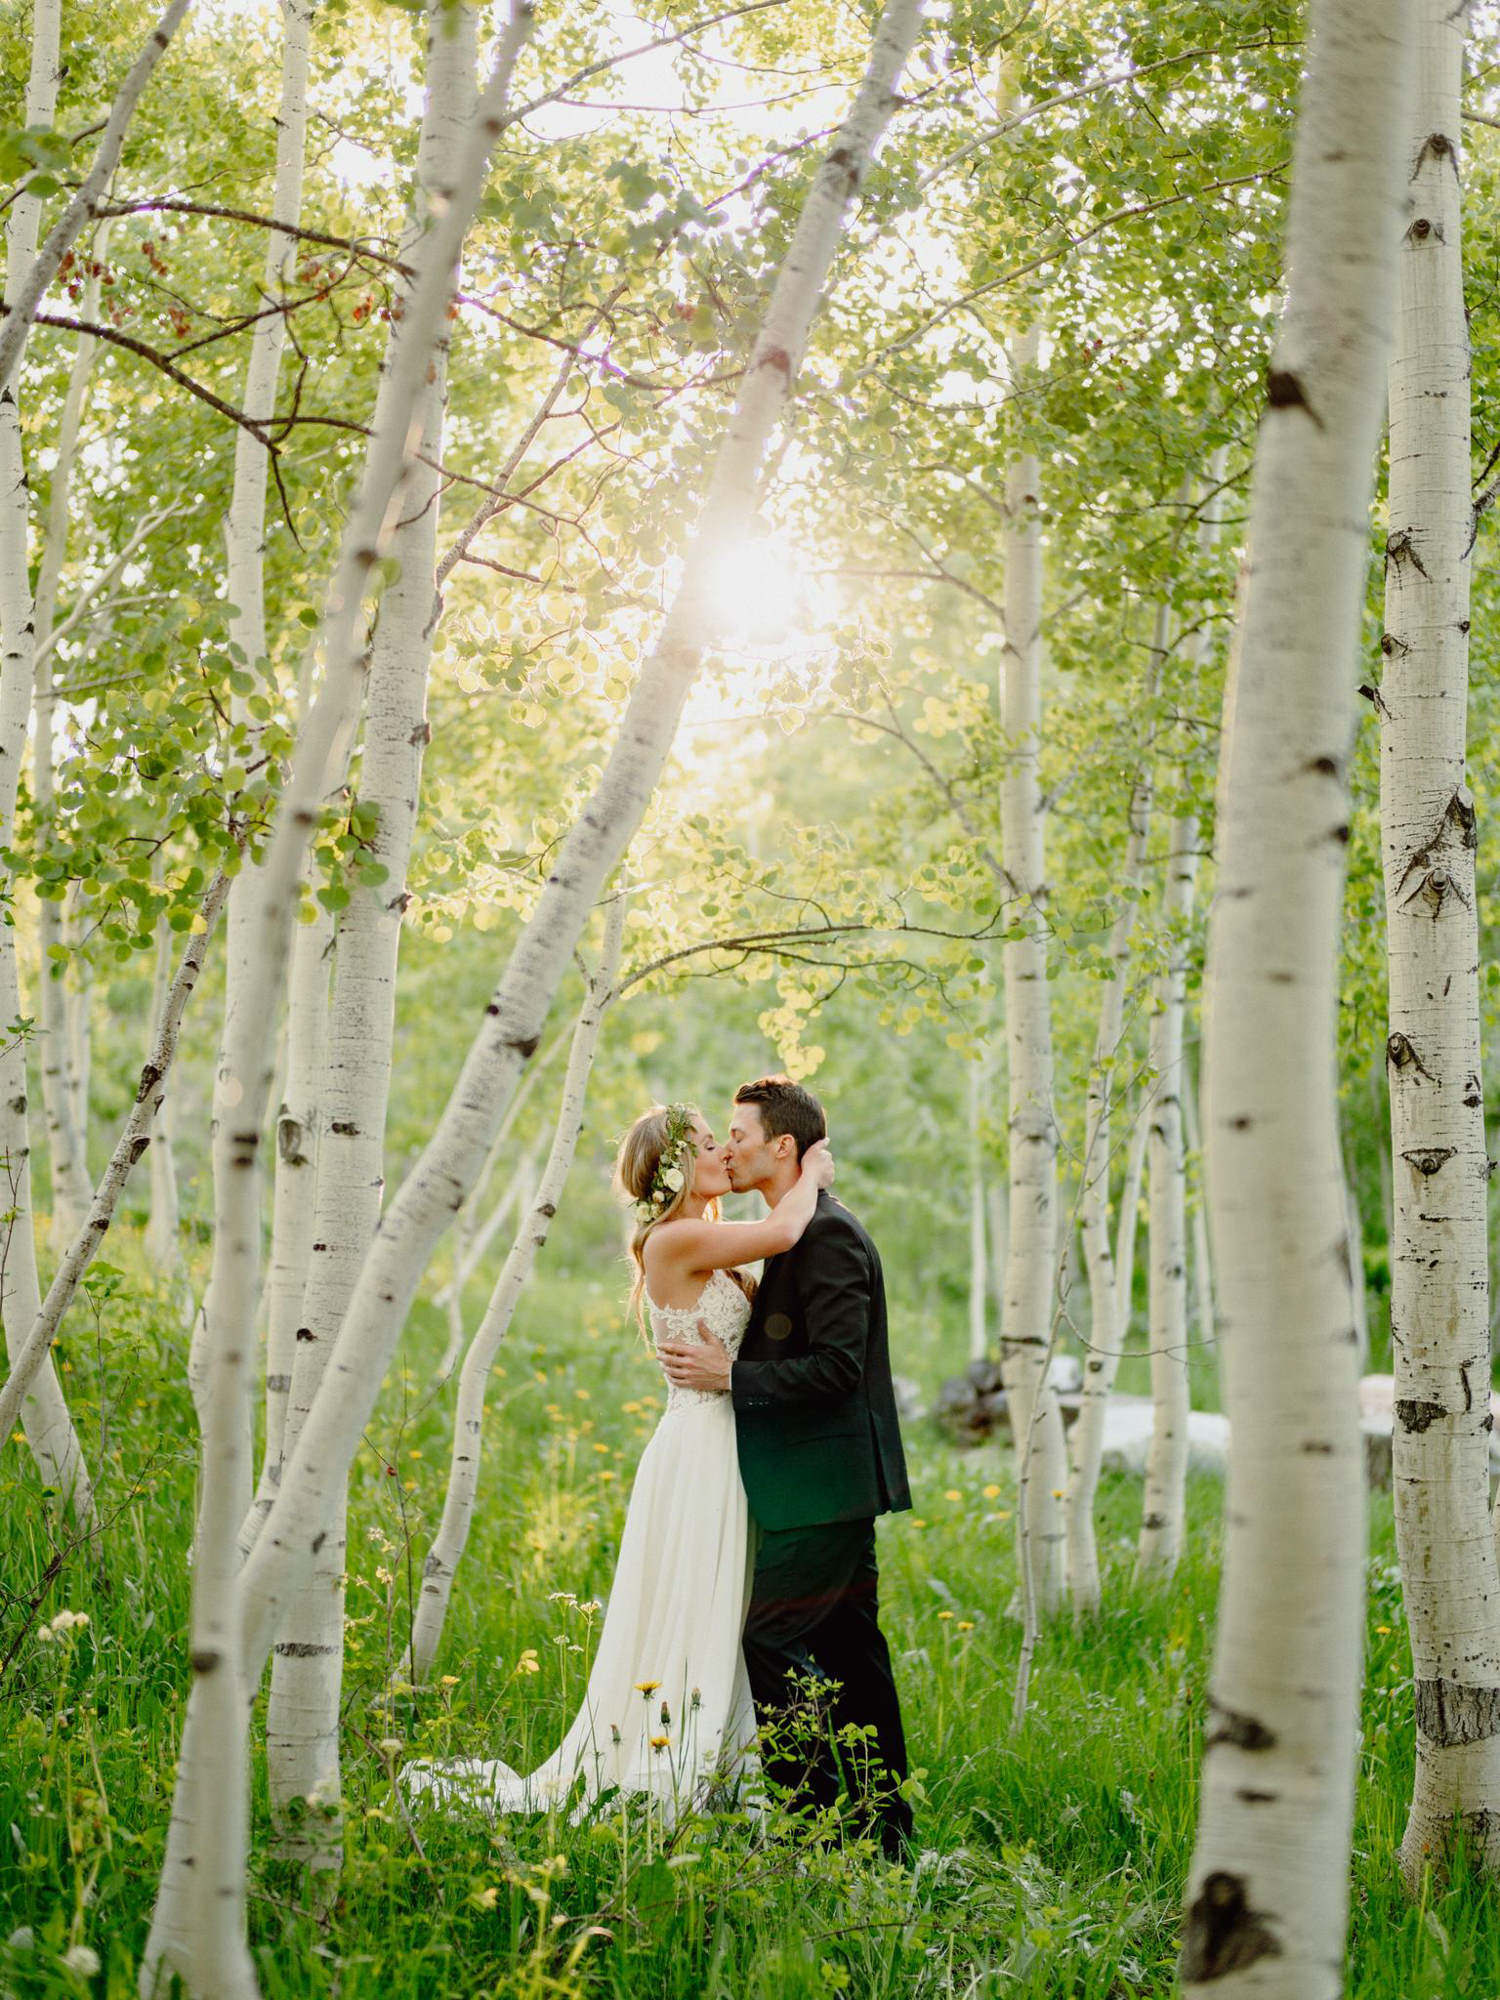 Bride in floral crown and groom kiss in birch forest, photo by Benj Haisch